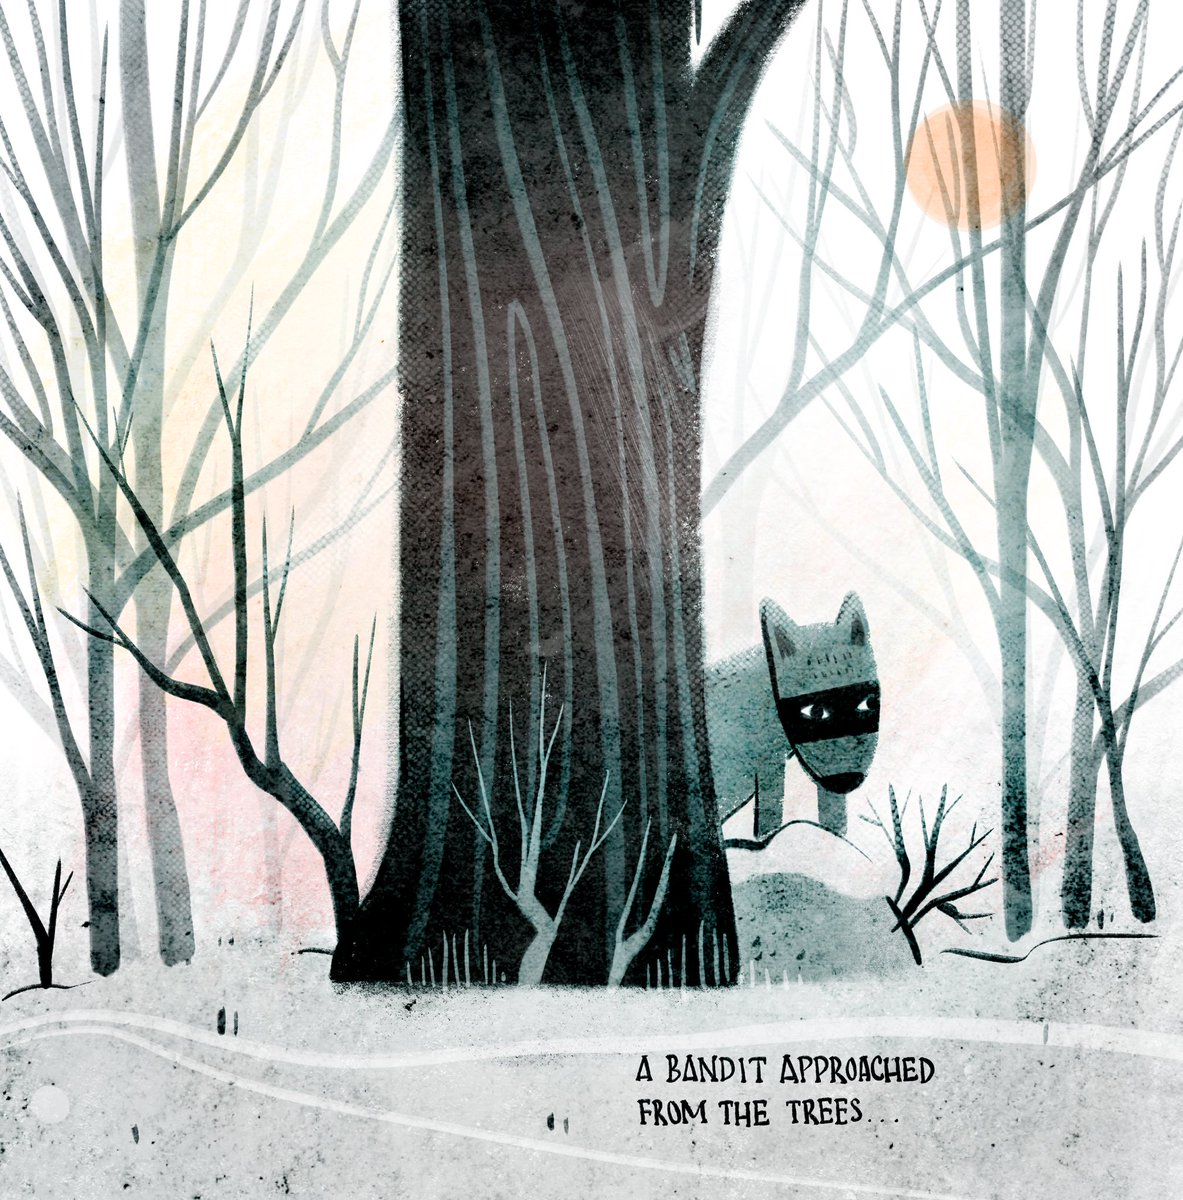 A bandit approached from the trees... #kidlitart #picturebookart #wolf<br>http://pic.twitter.com/A0K5x3QQD7